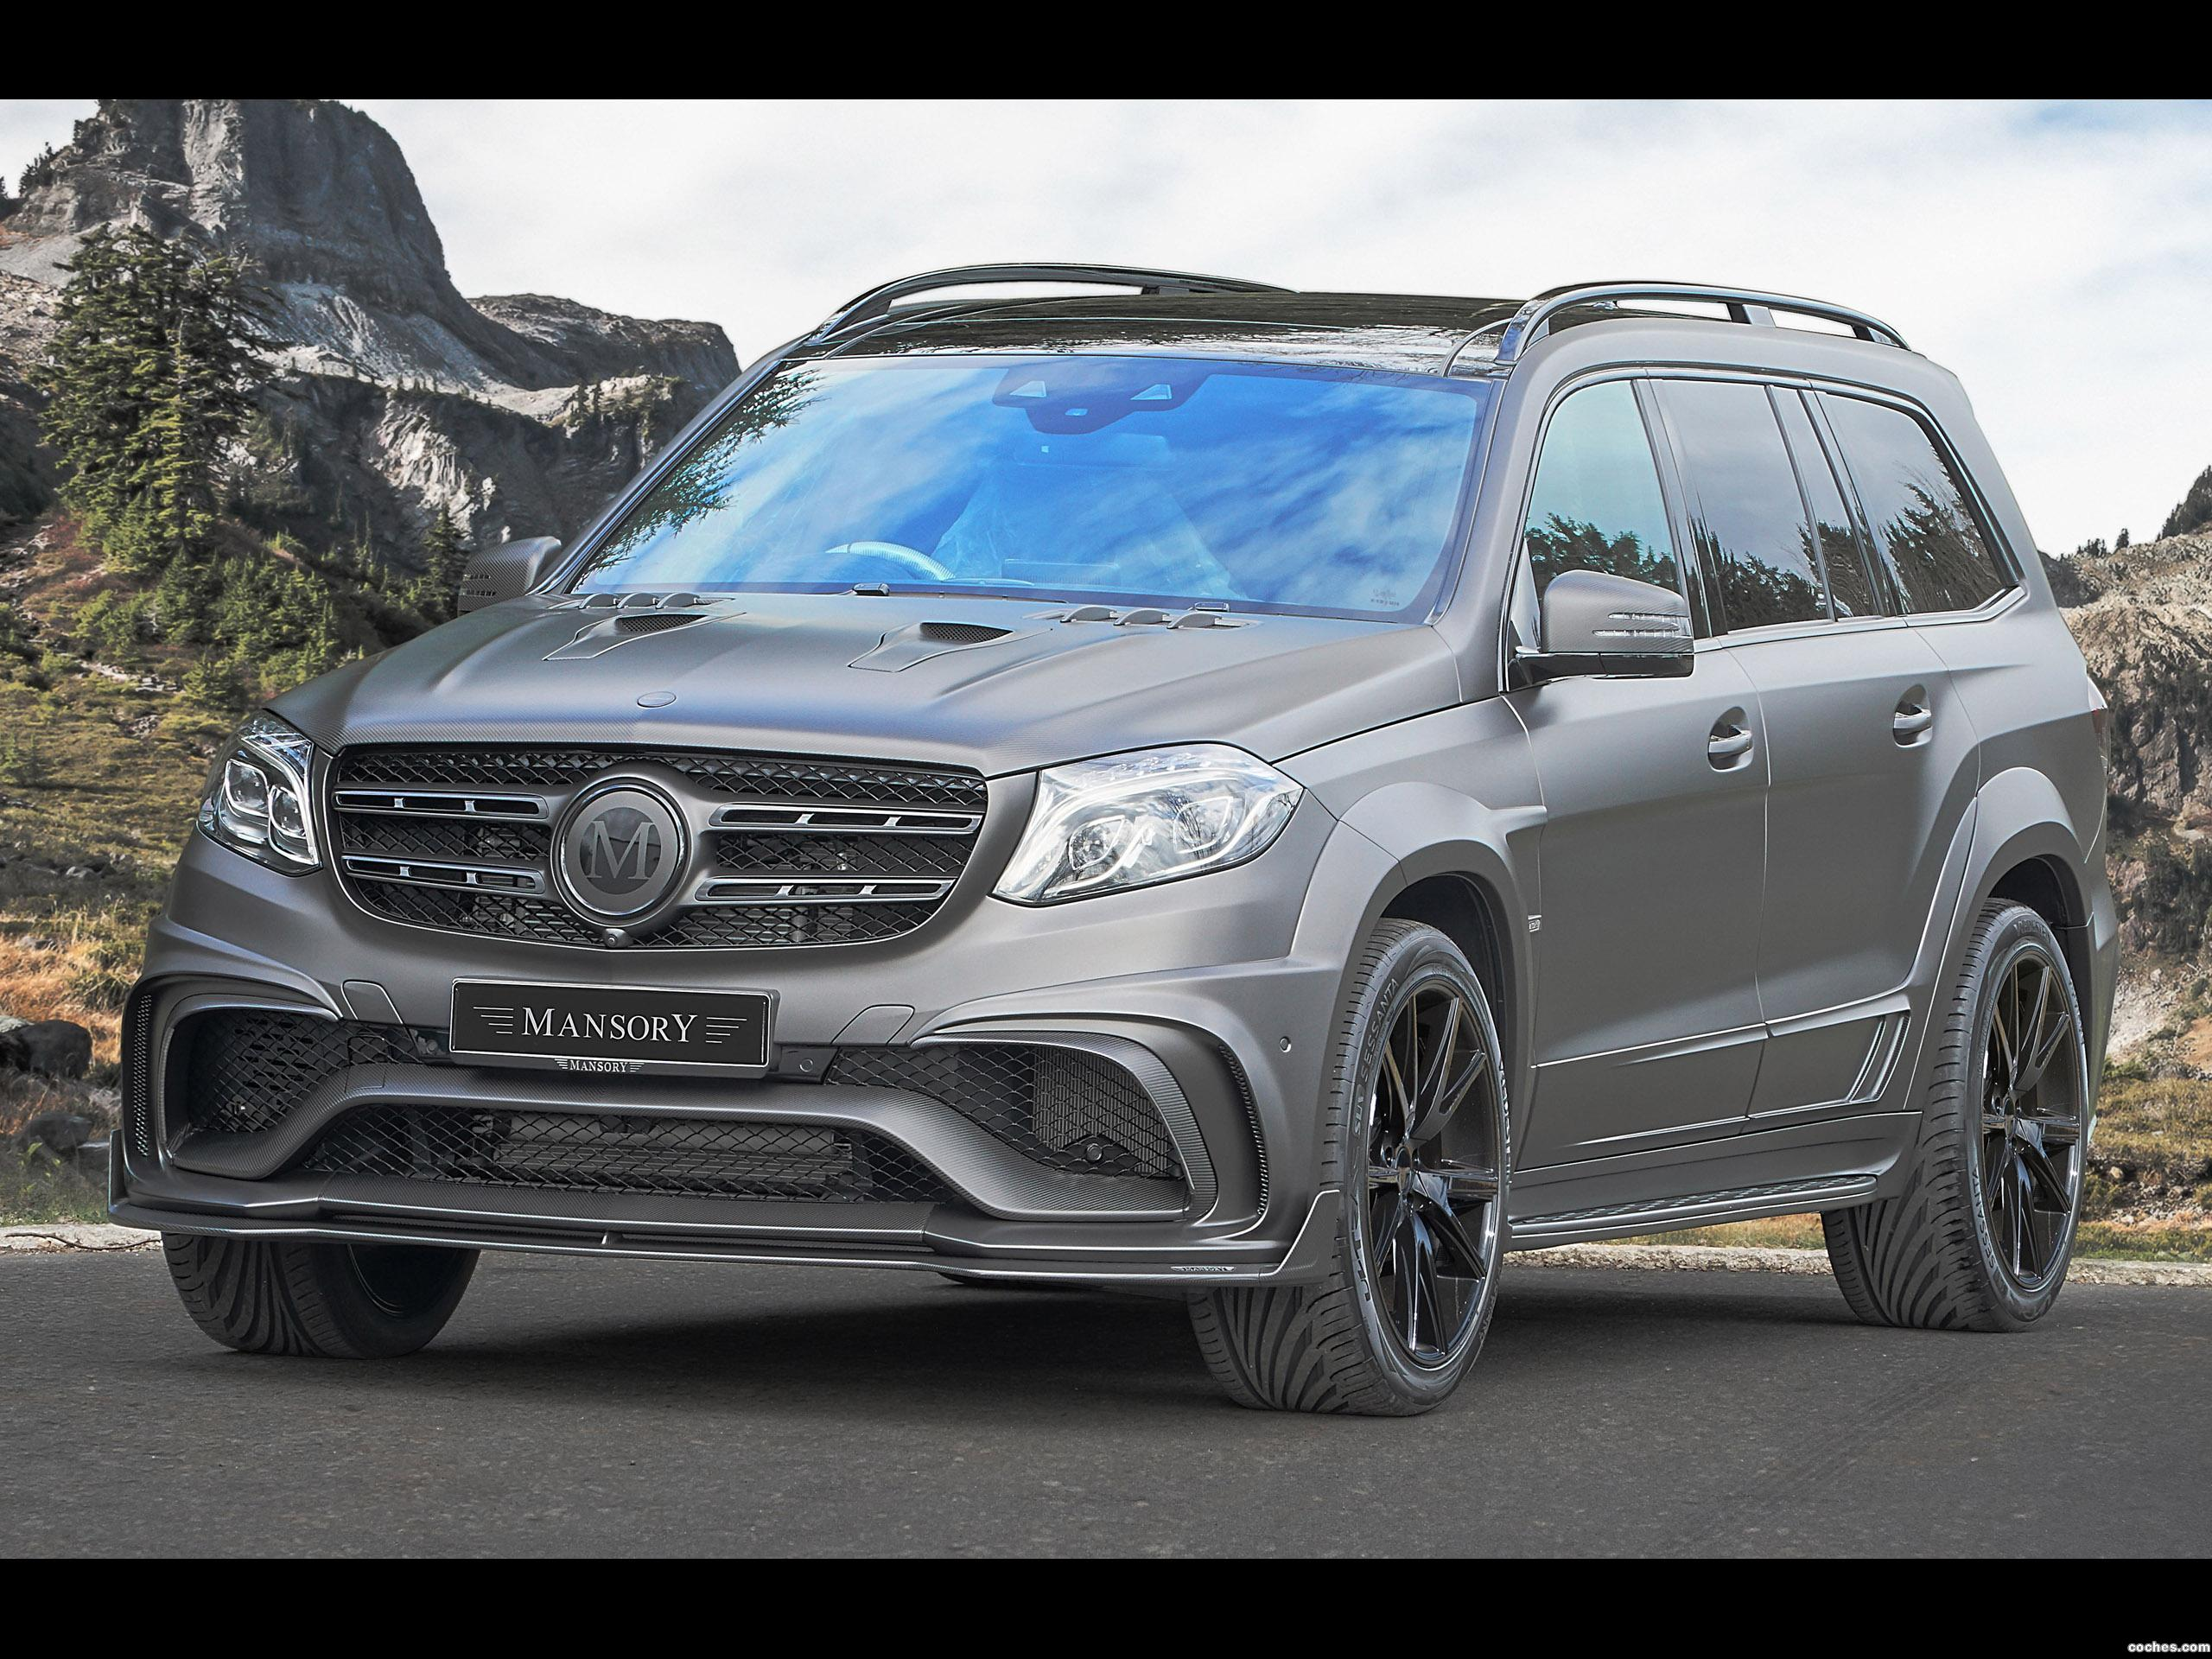 Foto 0 de Mercedes AMG GLS 63 4Matic UK Mansory (X166) 2017